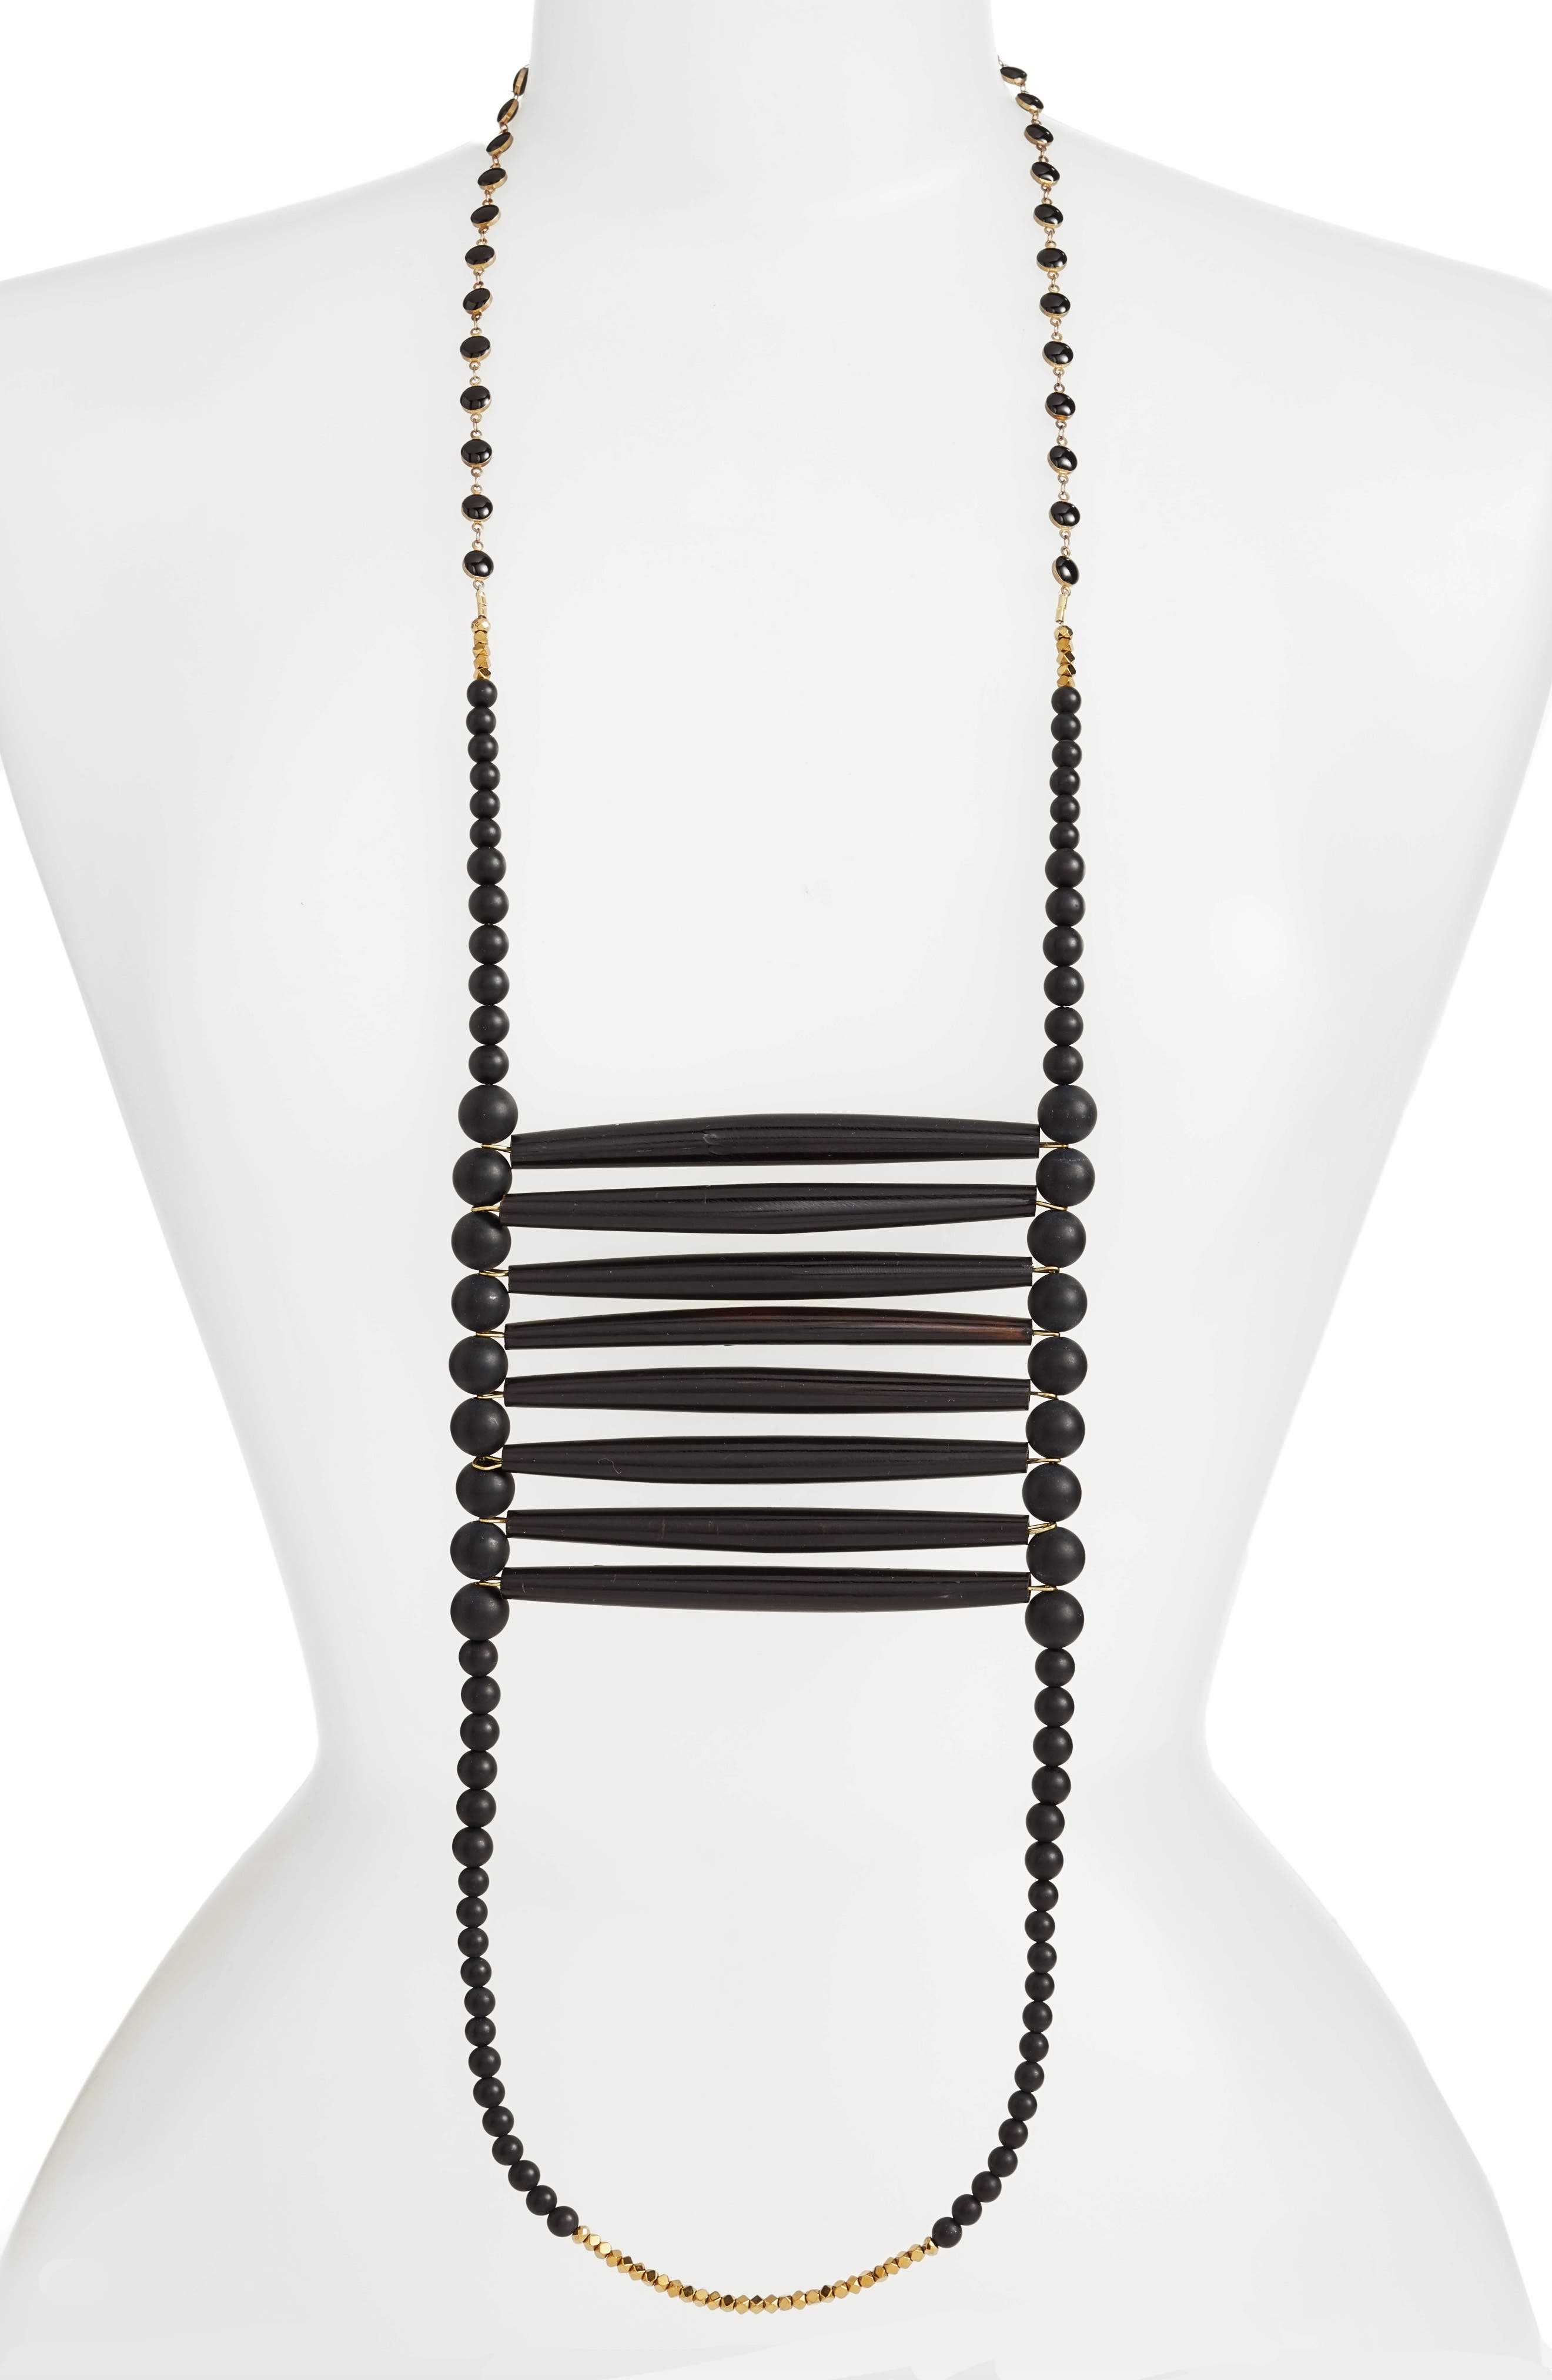 Into the Black Extra Long Beaded Necklace,                         Main,                         color,